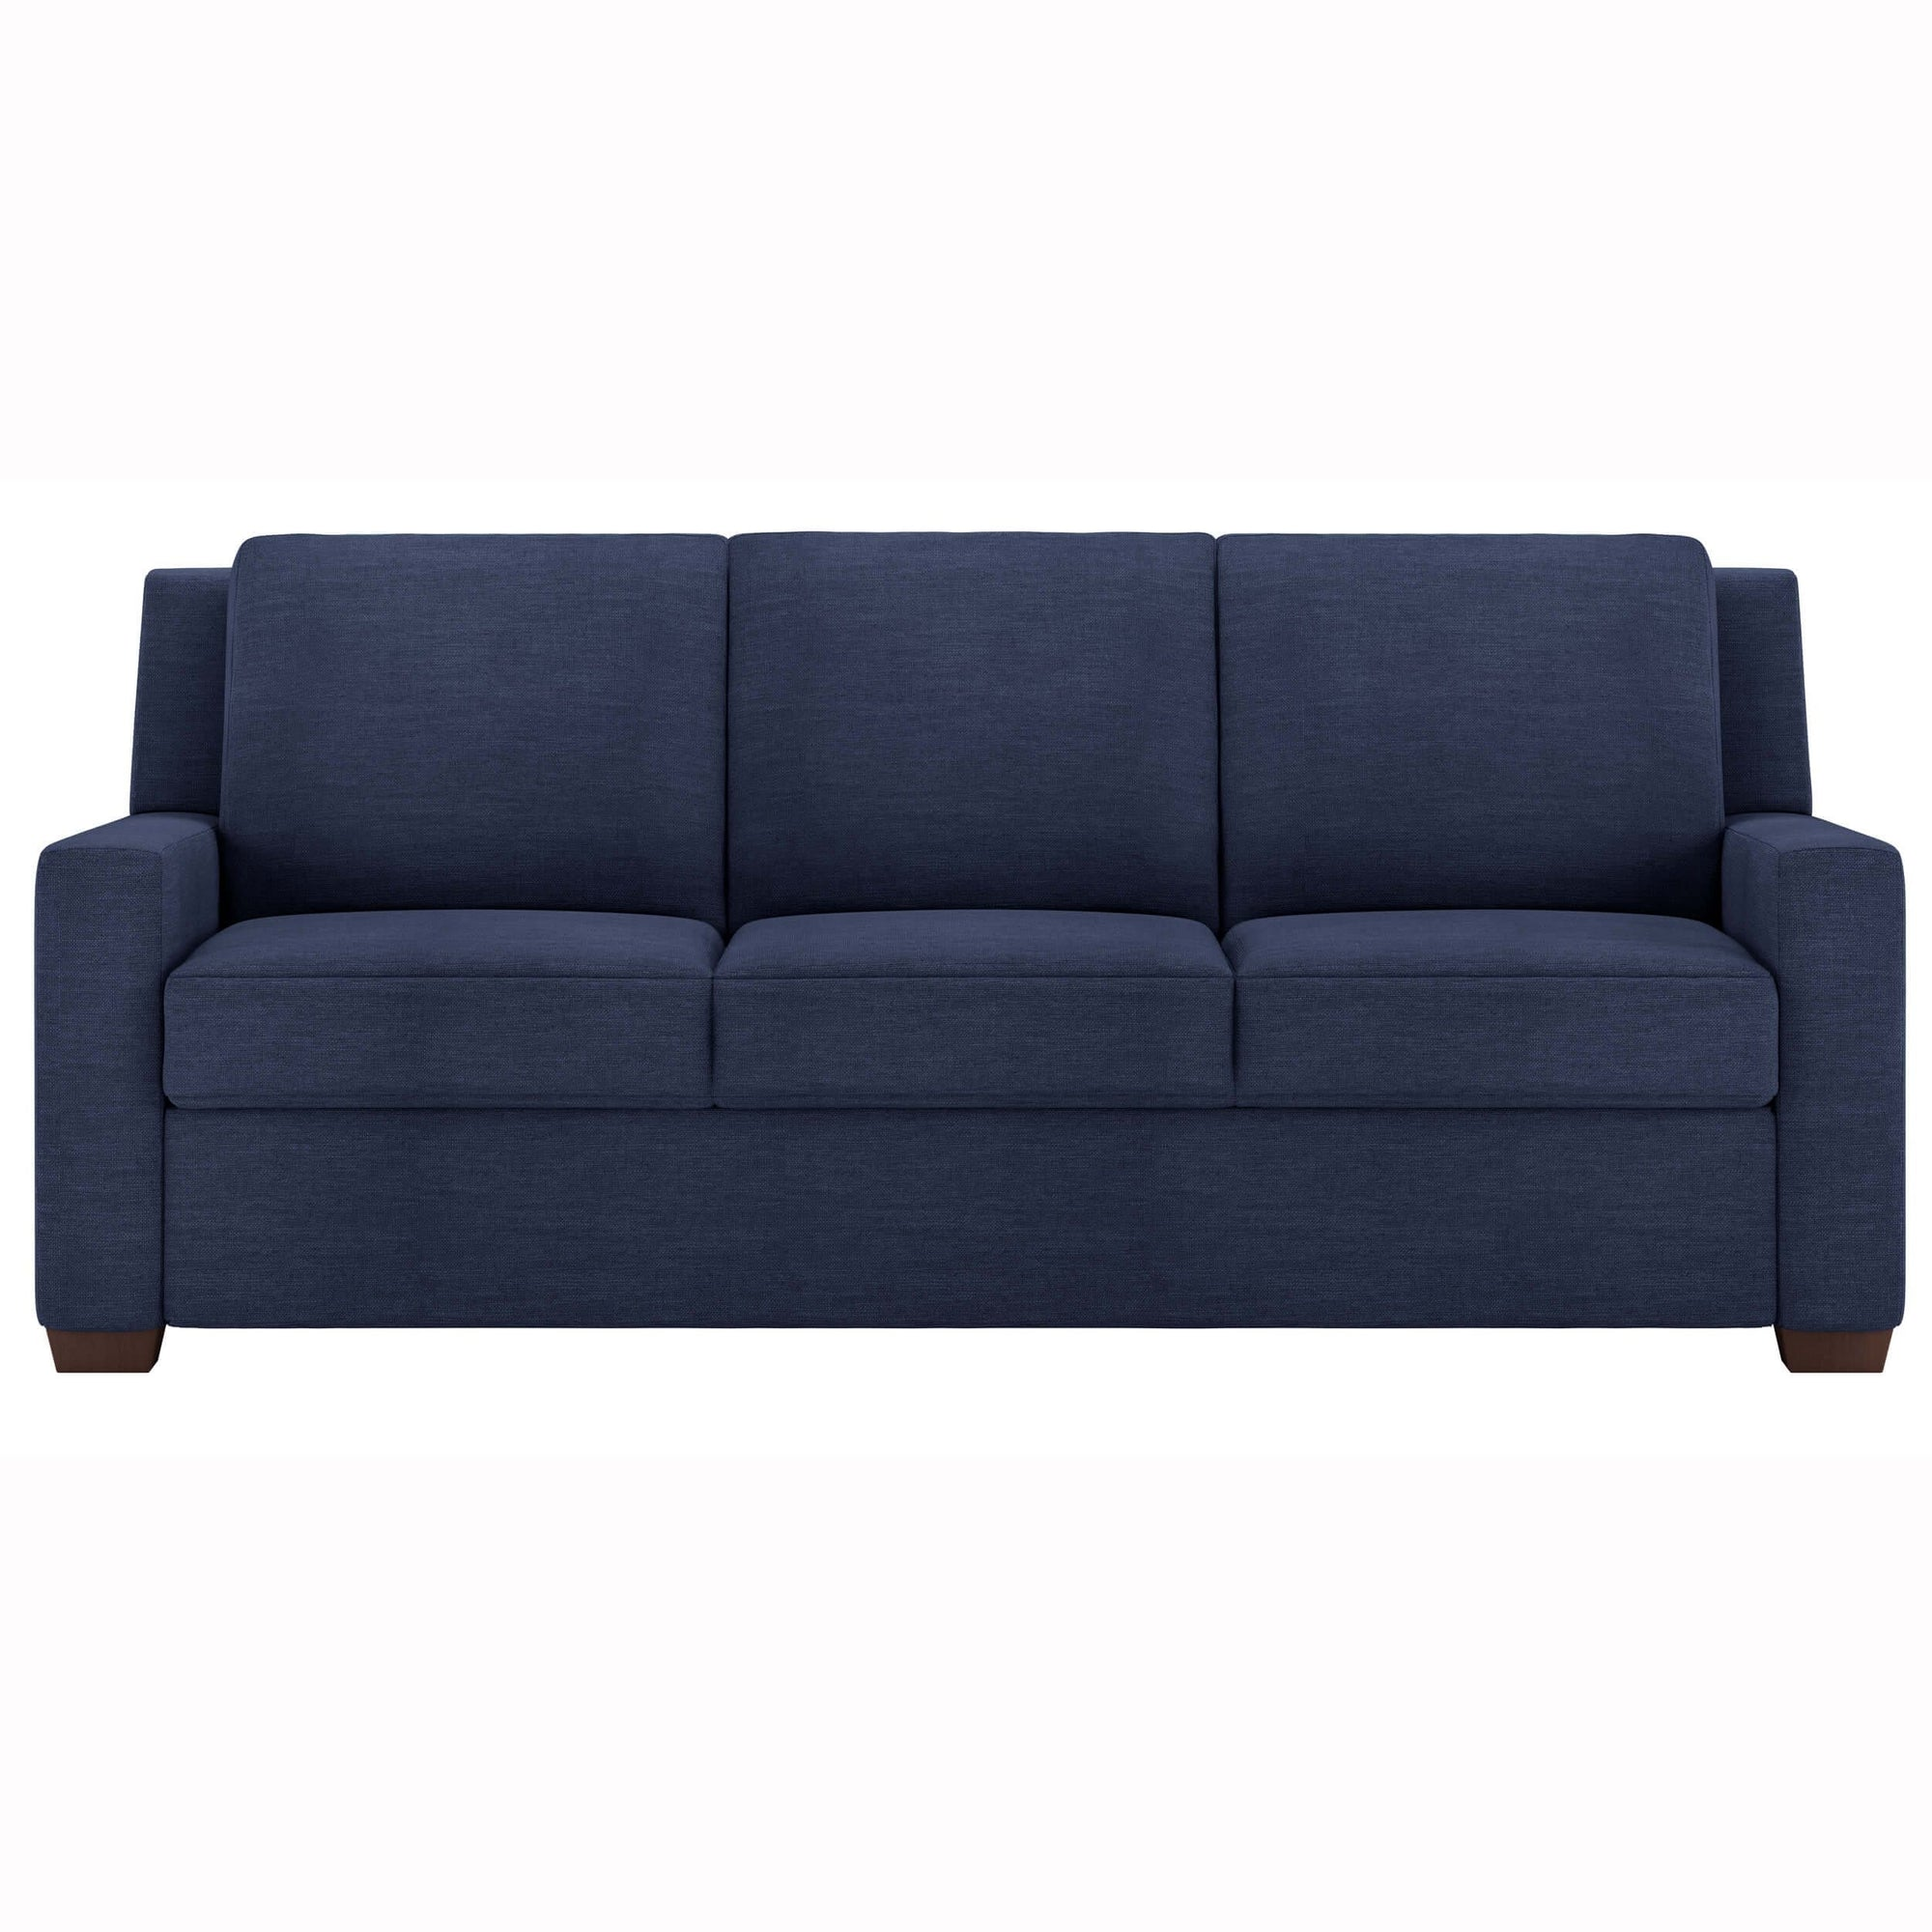 Groovy American Leather Lyons Queen Sleeper Sofa Nuance Indigo Machost Co Dining Chair Design Ideas Machostcouk